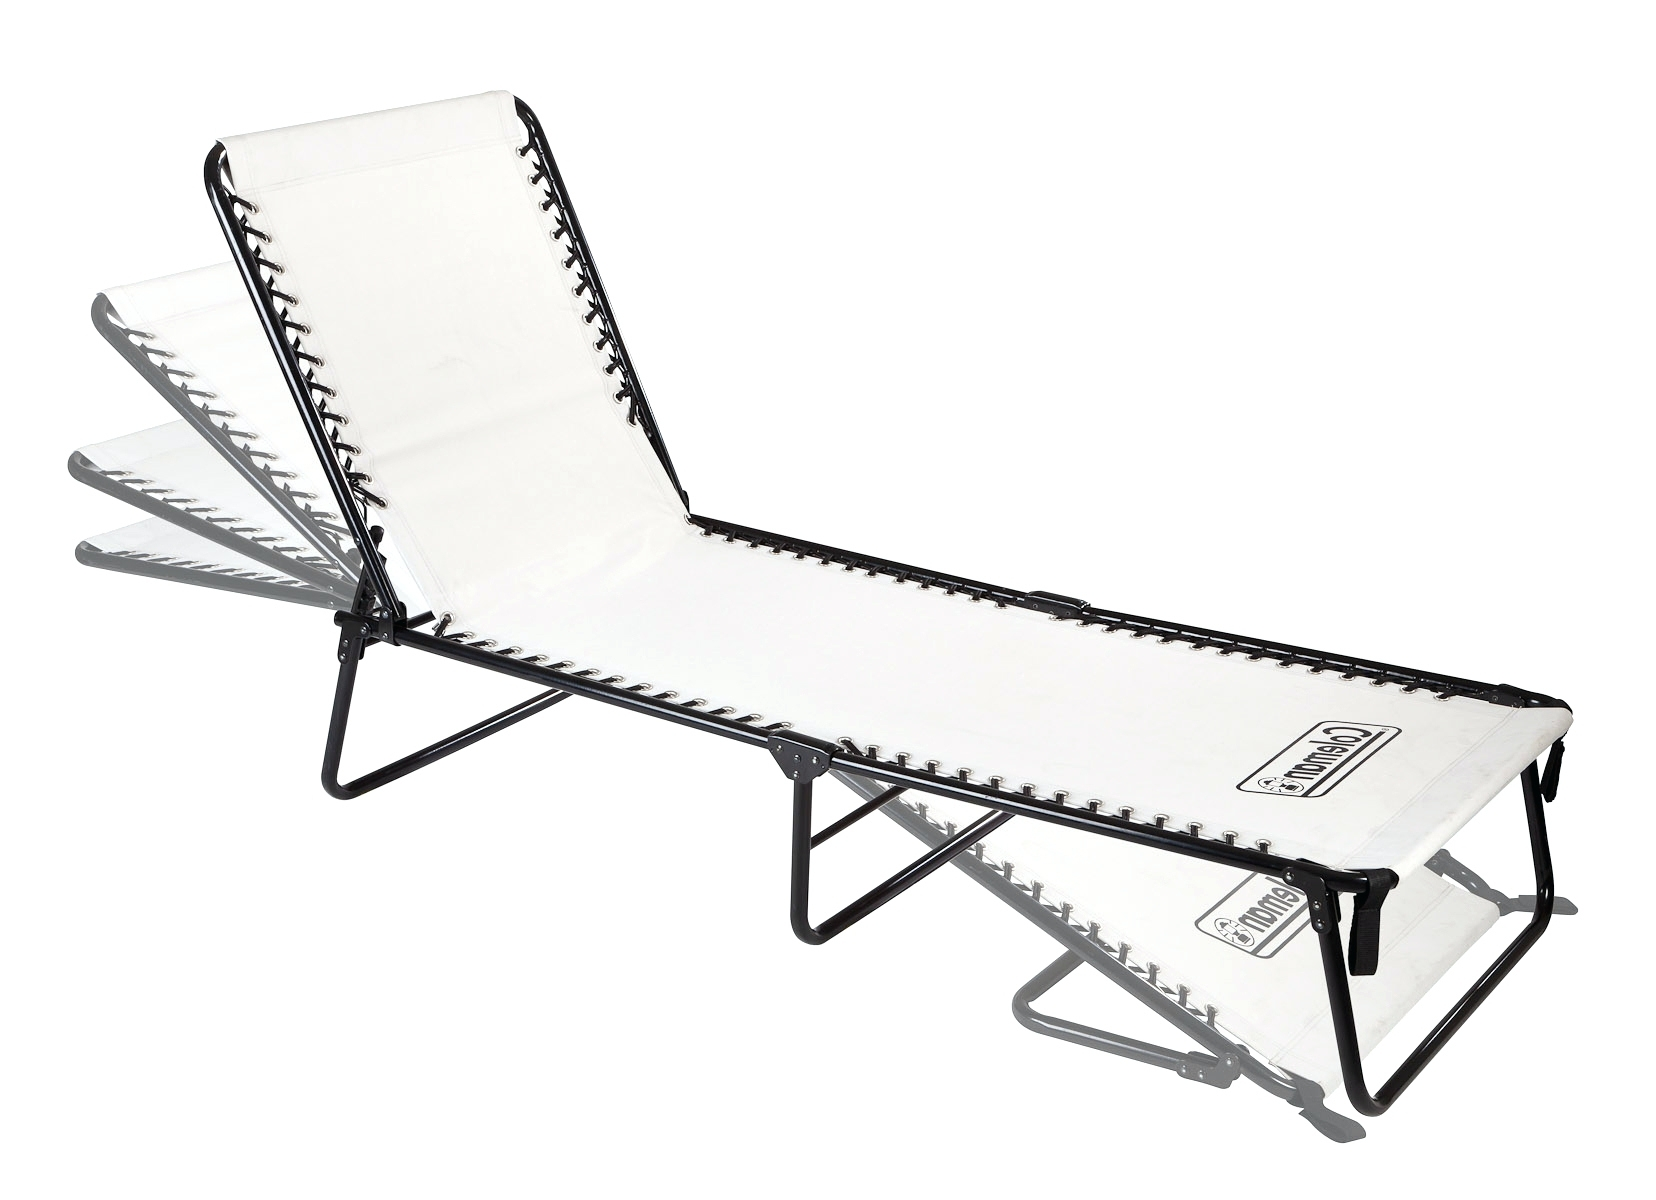 Portable Chaise Lounge Chairs Outdoor • Lounge Chairs Ideas With Widely Used Foldable Chaise Lounge Outdoor Chairs (View 9 of 15)